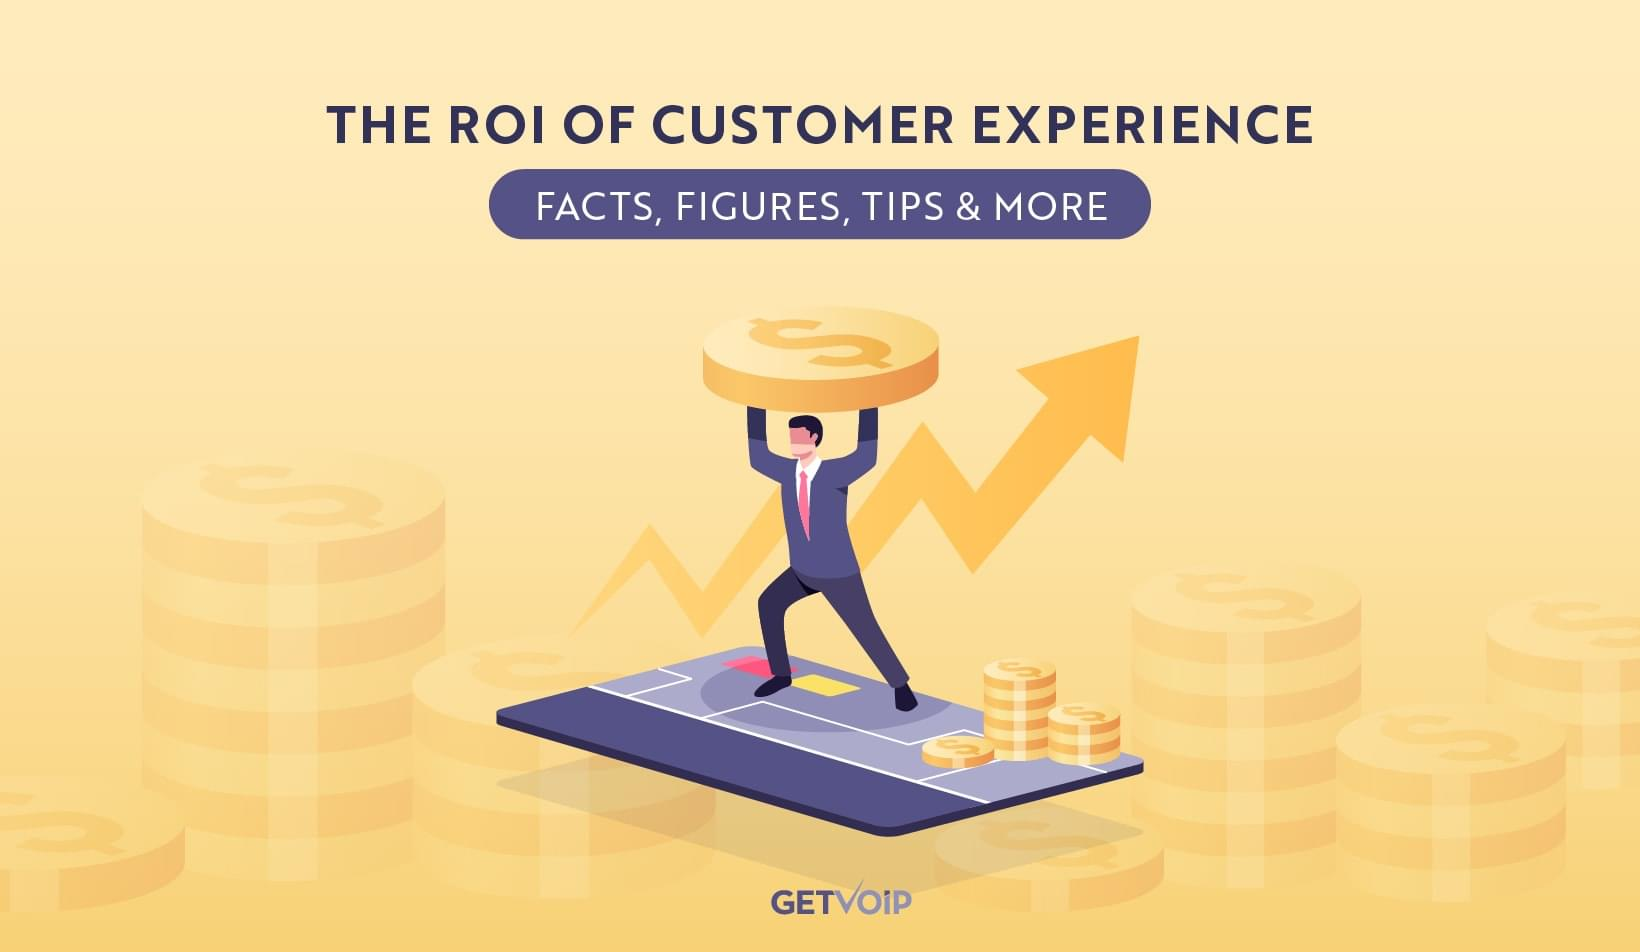 The ROI of Customer Experience  [Facts, Figures, Tips & More]